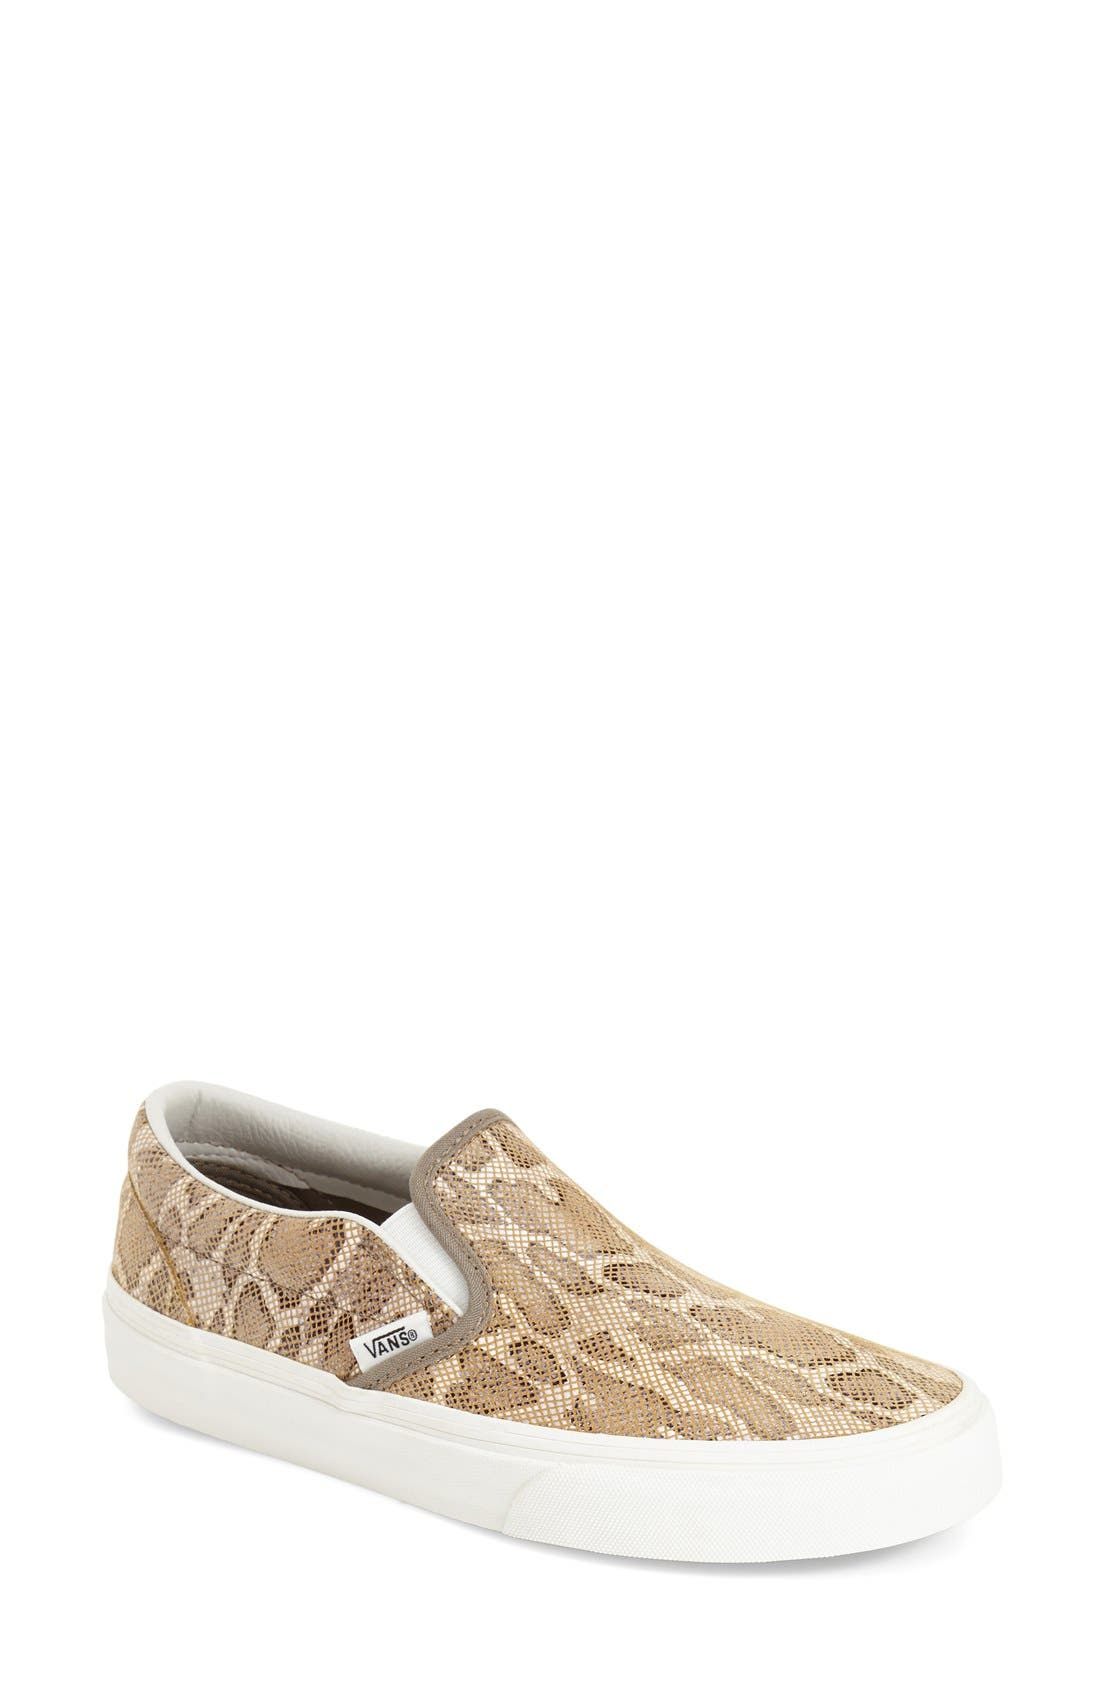 Alternate Image 1 Selected - Vans 'Classic' Leopard Print Slip-On (Women)